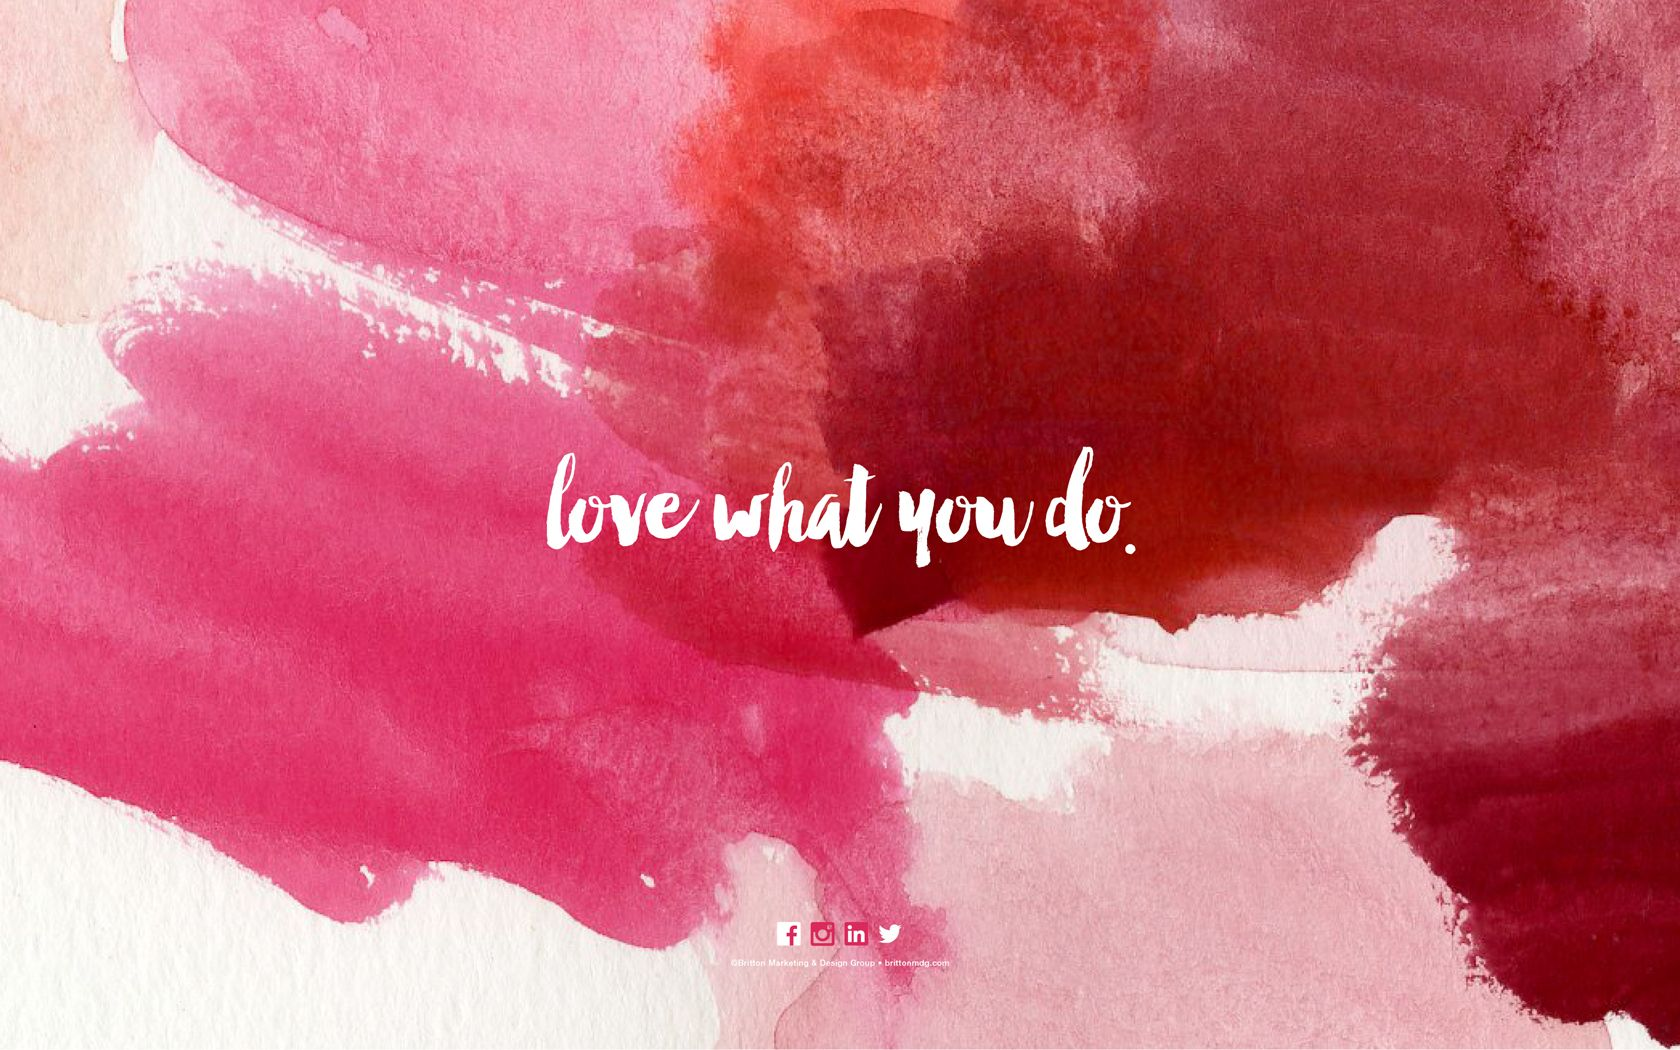 Love Wallpapers Maker : rifle paper co desktop wallpaper design. Pinterest Rifle paper, Wallpaper and Laptop wallpaper